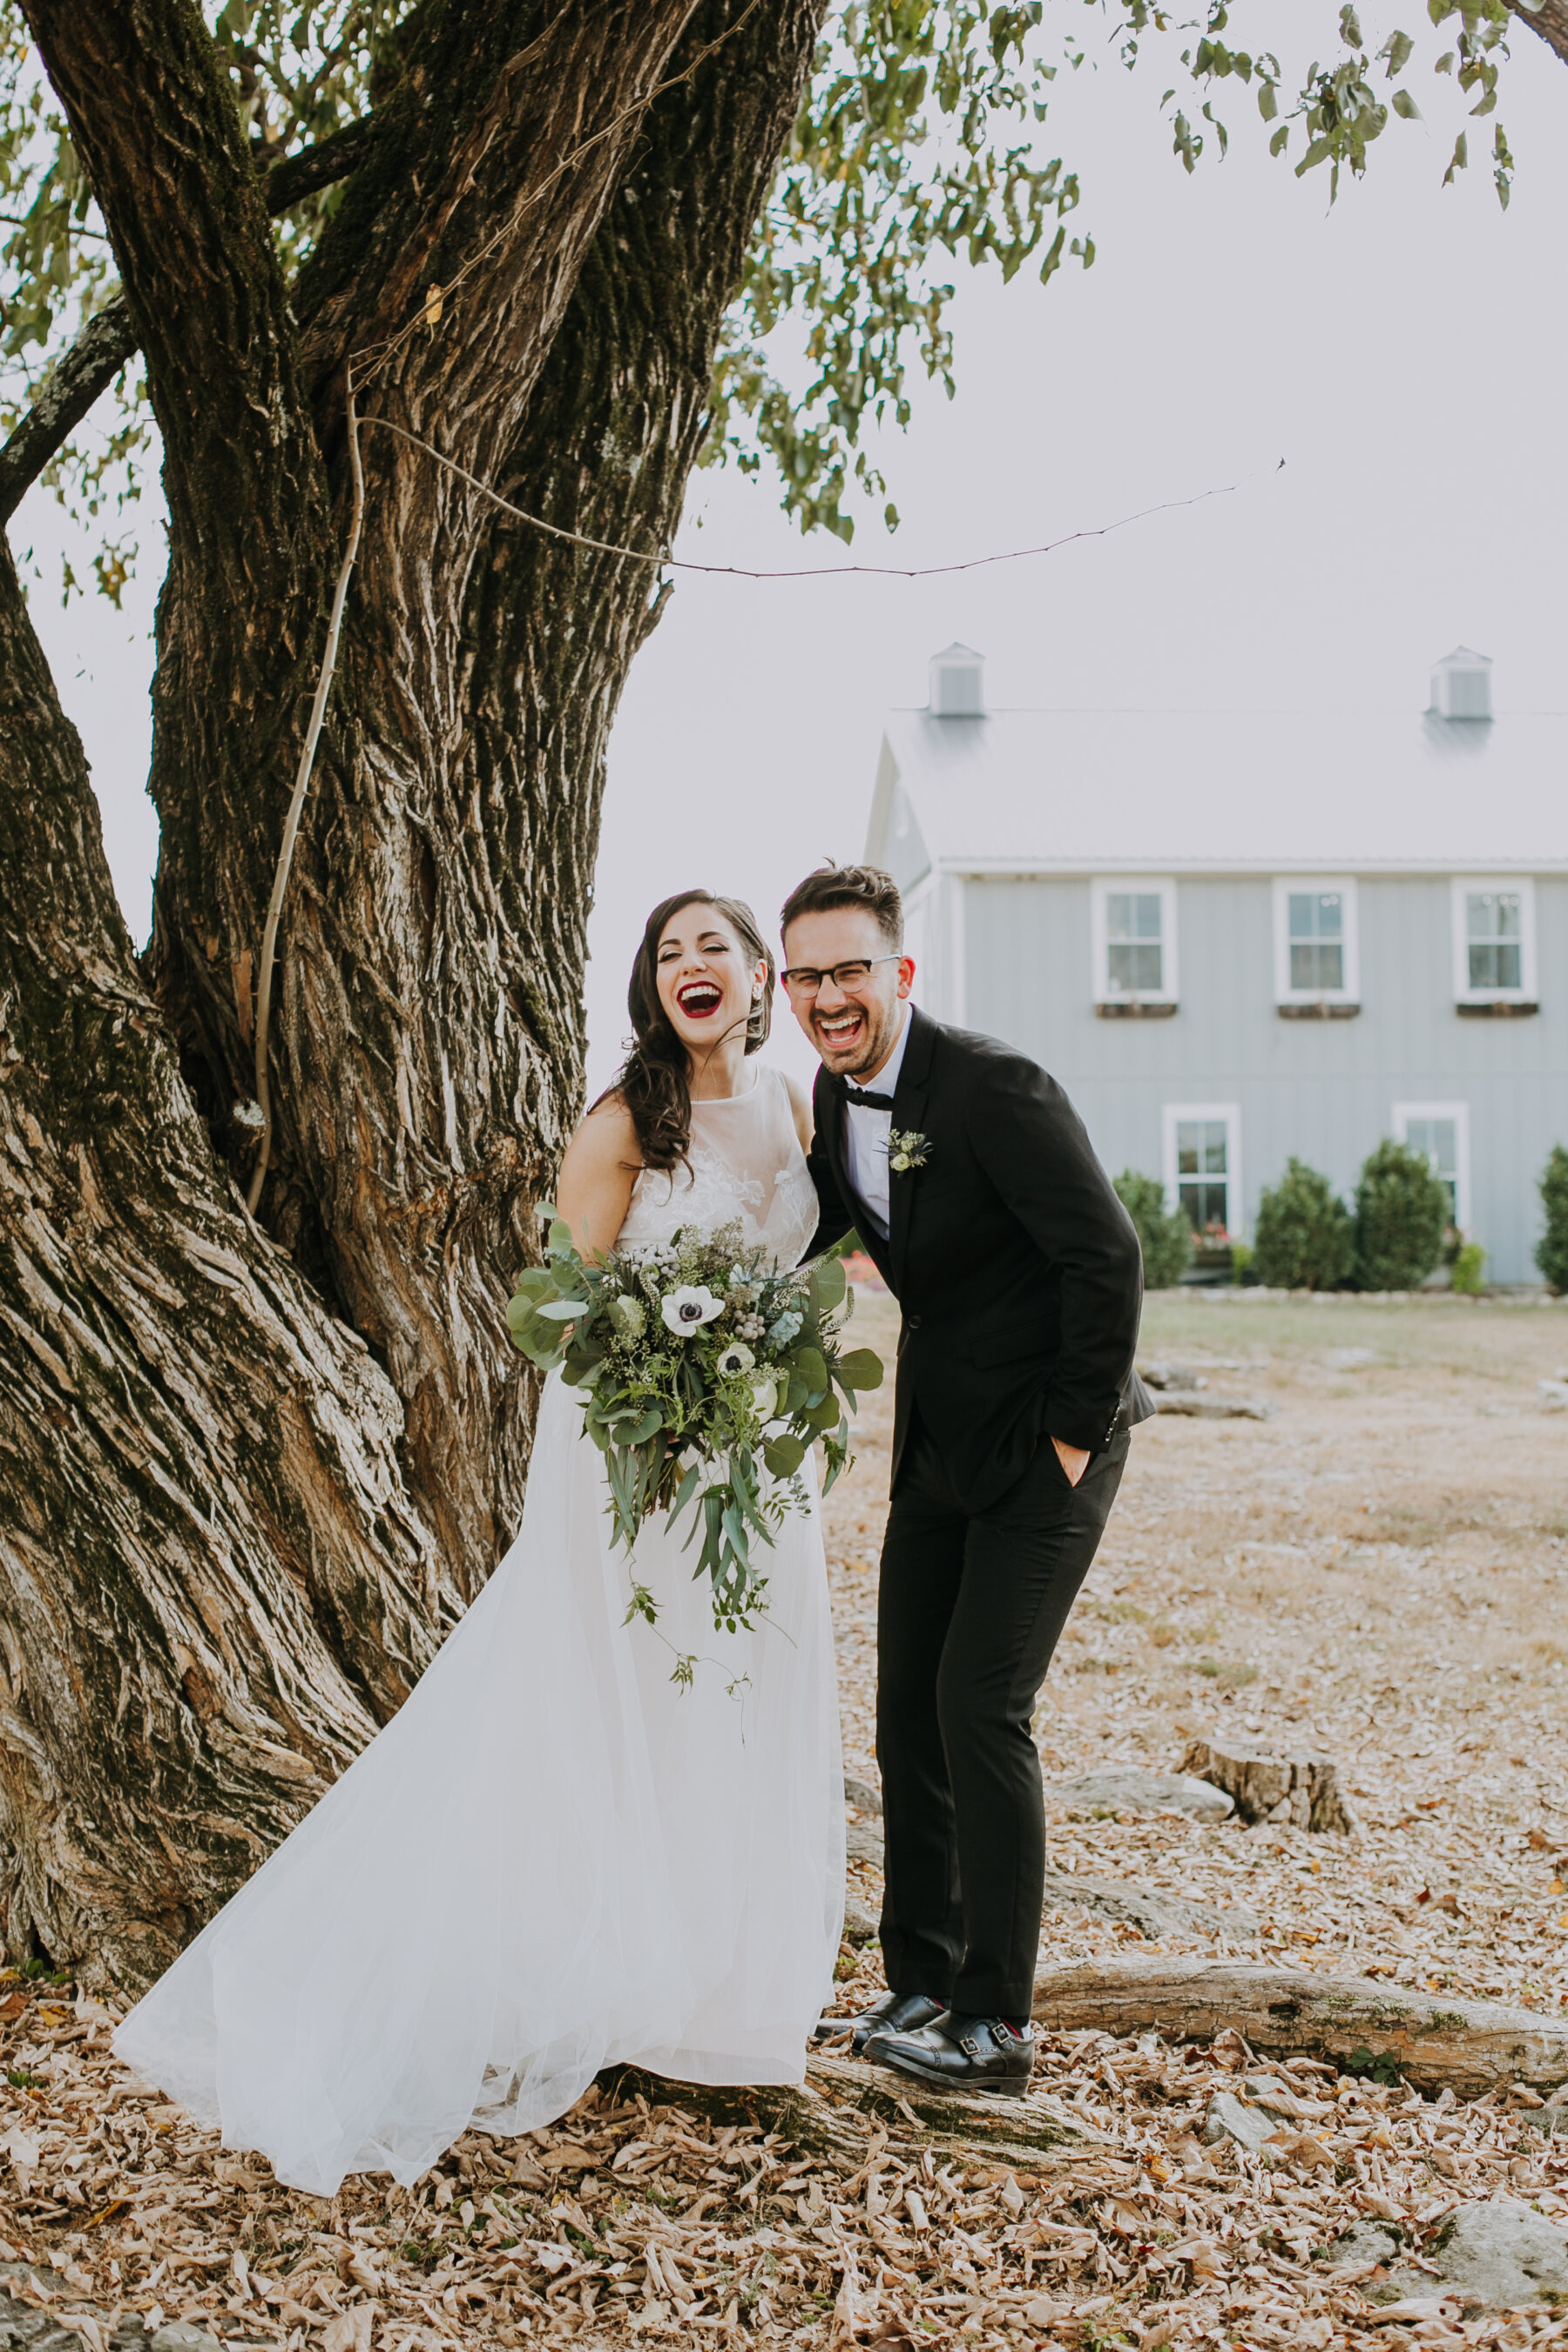 Wedding portrait: Nashville Wedding with Beautiful Views by Teale Photography featured on Nashville Bride Guide